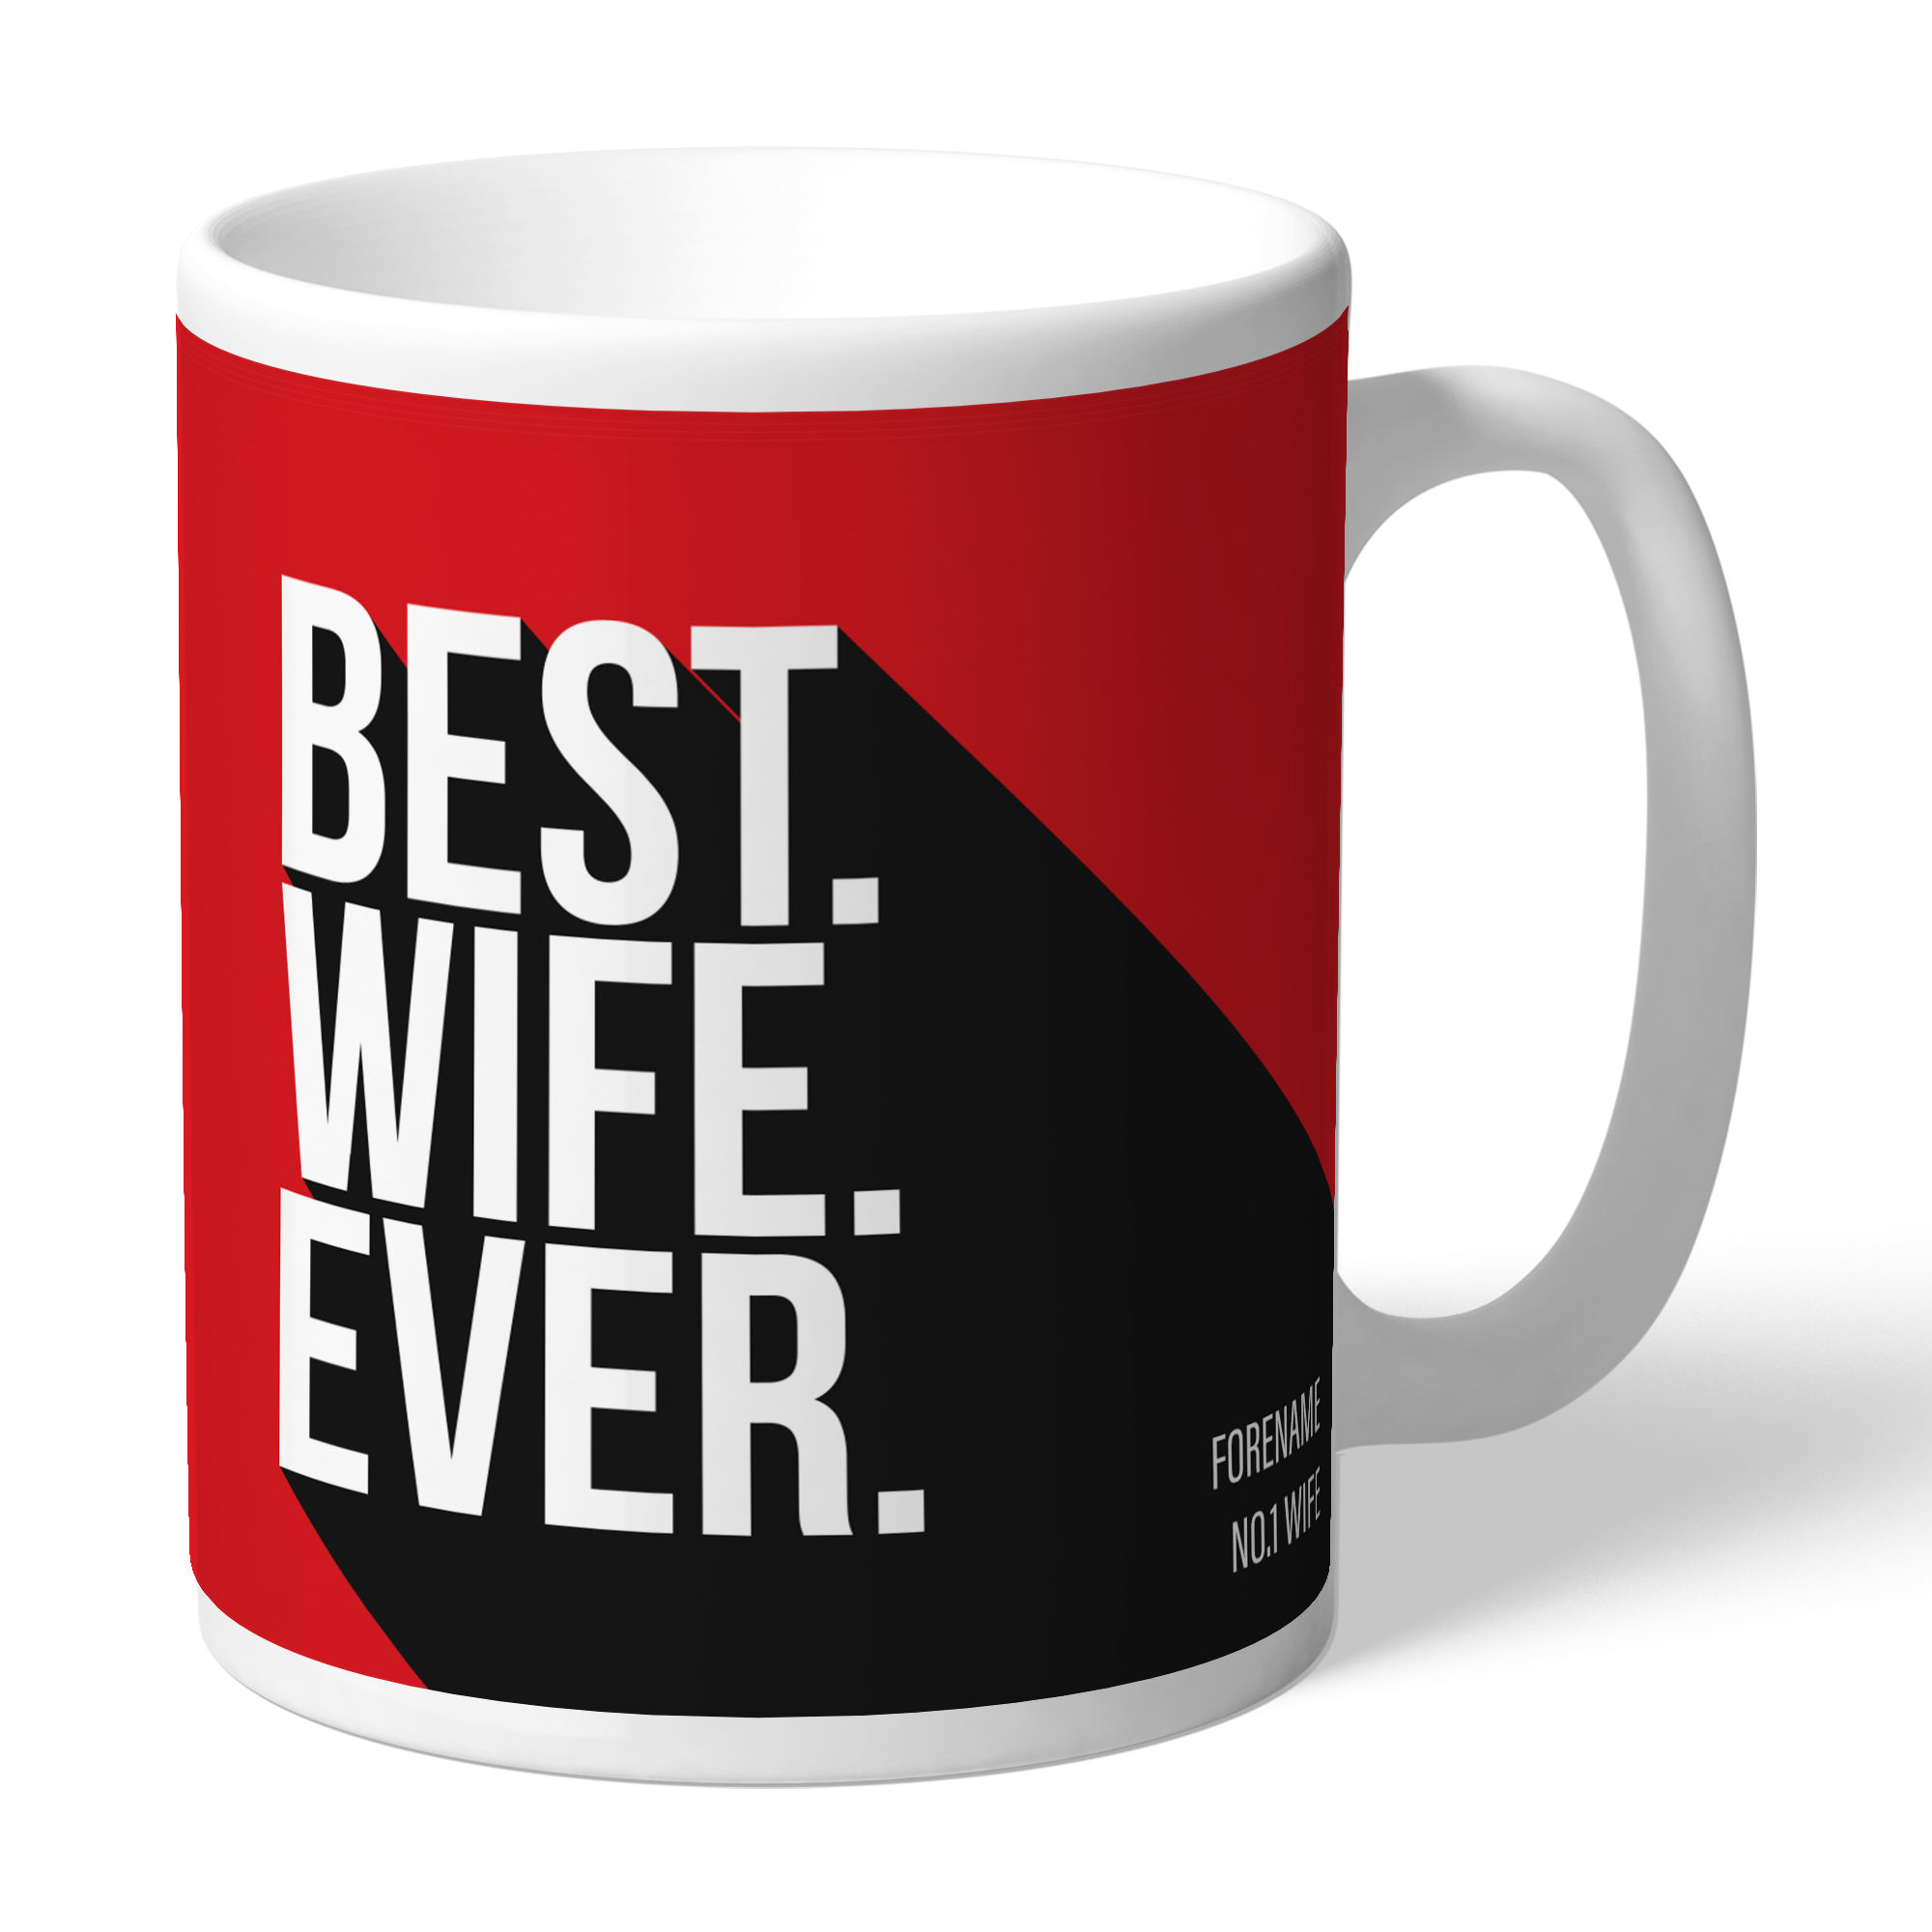 Southampton FC Best Wife Ever Mug